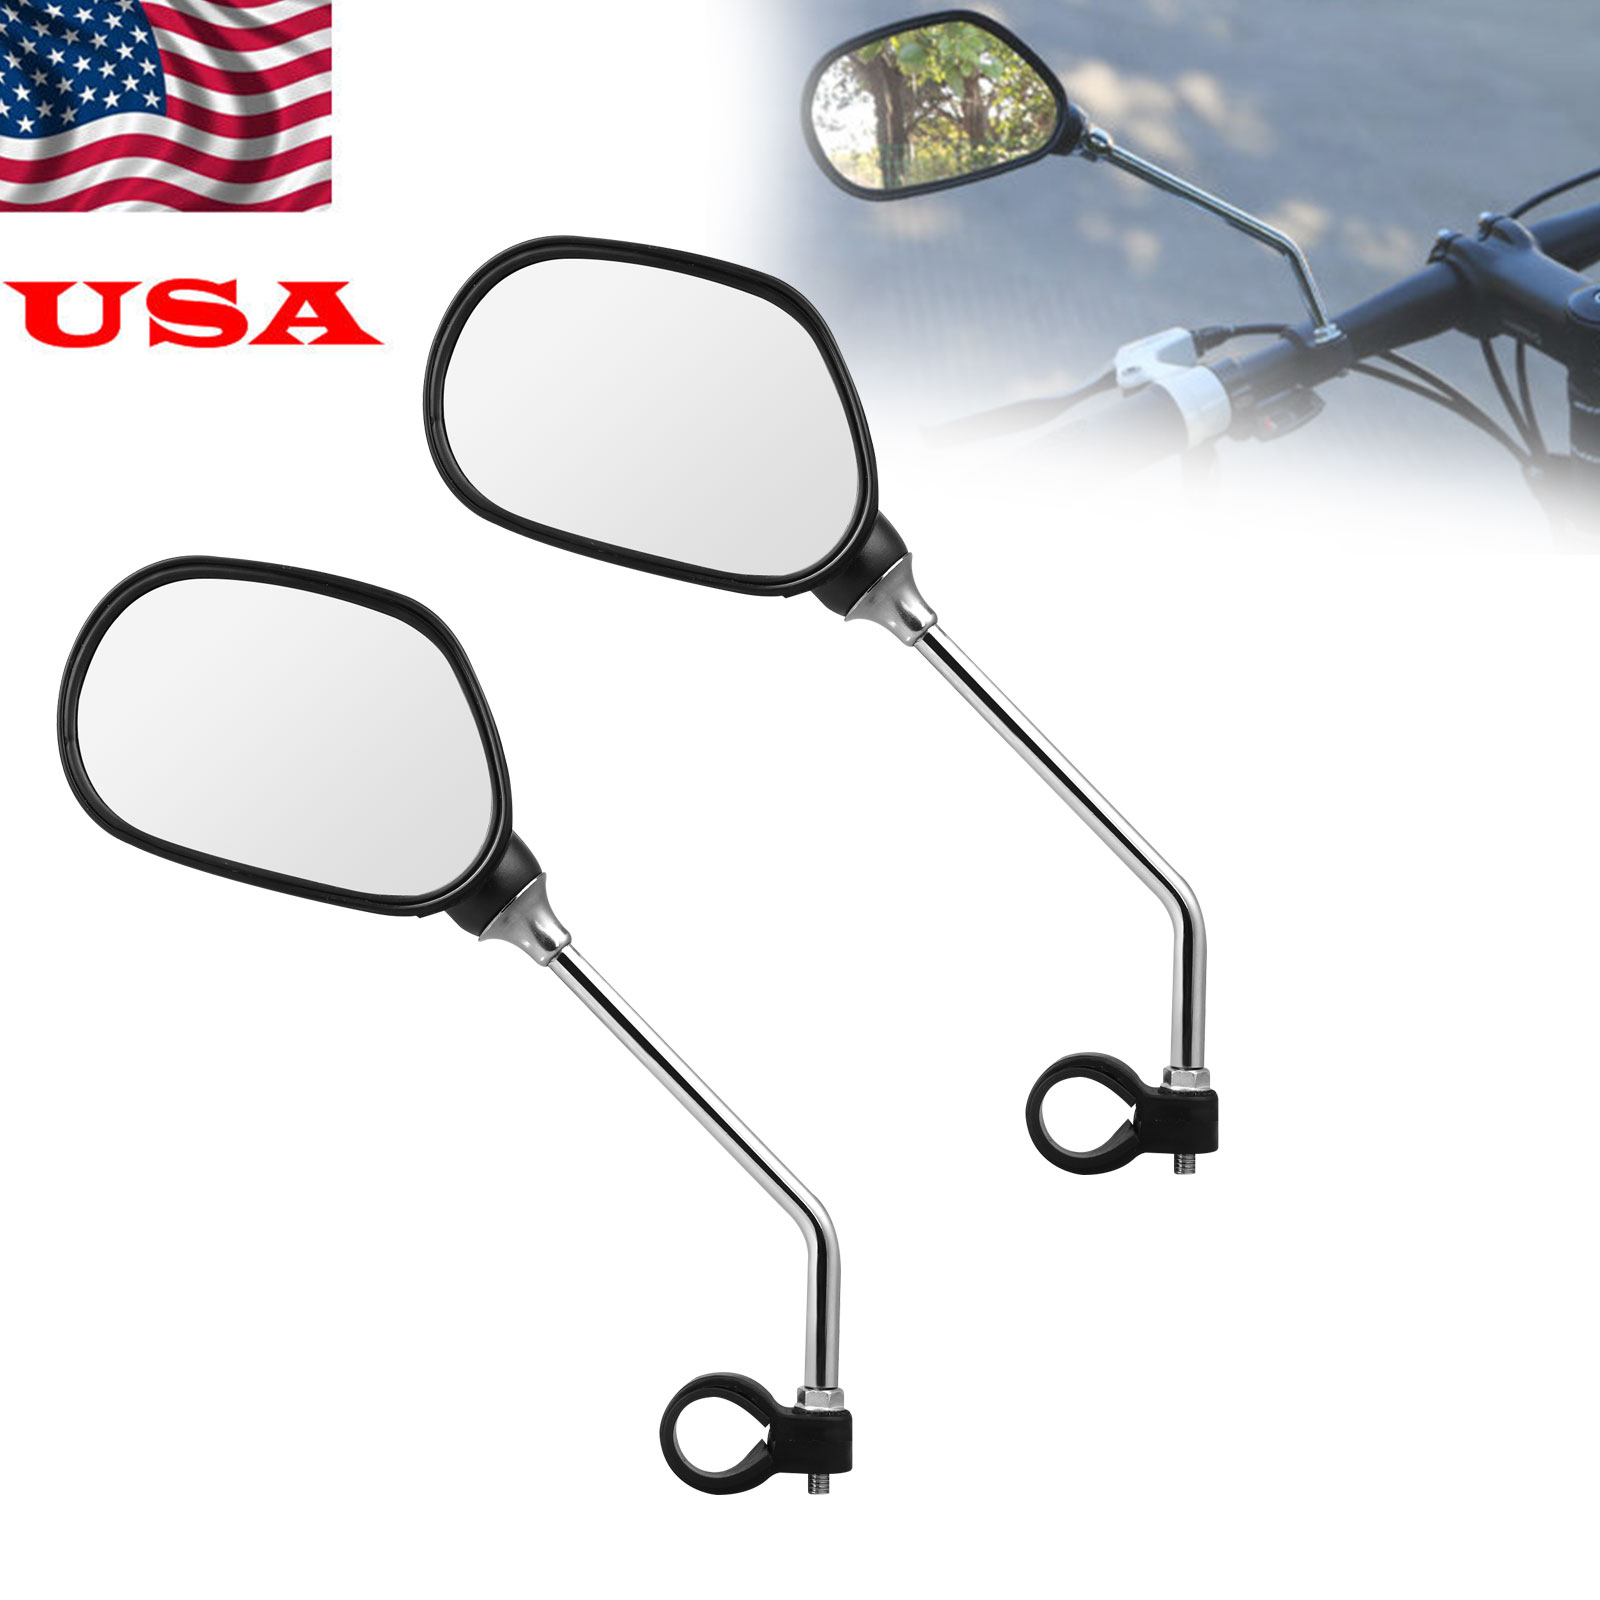 M6 Bicycle Back Mirror Handlebar Rear View Rearview Cycling Bike Safe Mirrors US